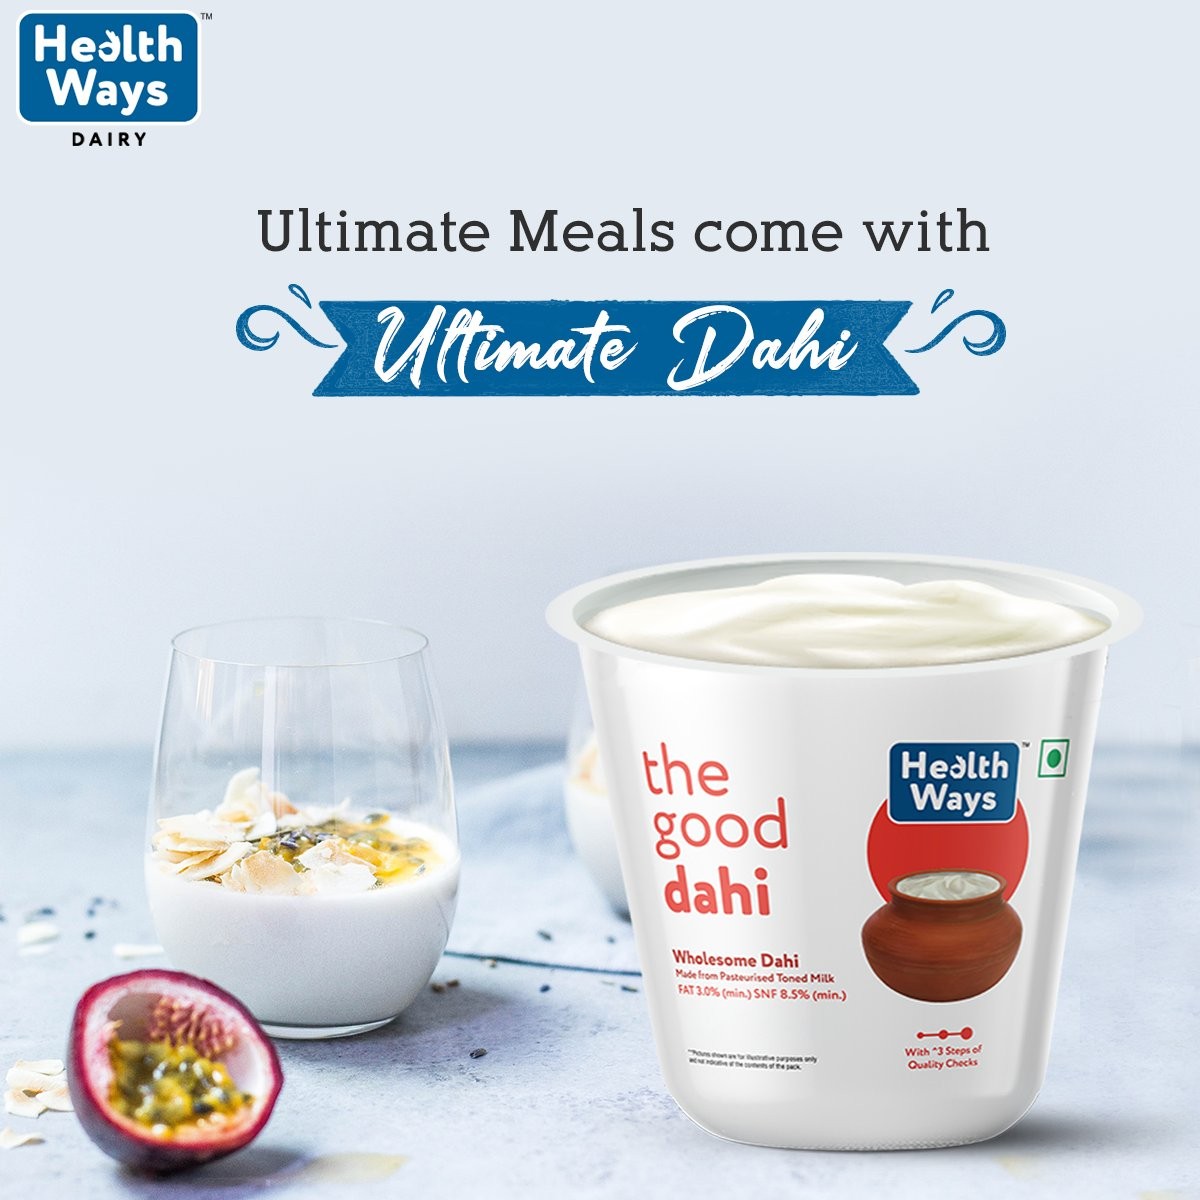 How about healthy paranthas with your favourite dahi next to it?  Visit:  http://bit.ly/2lc20JC    #HealthwaysForYou  #Wholesome  #Dahi  #milkproducts  #curd  #healthyeating  #healthyliving  #wellness  #wellbeing